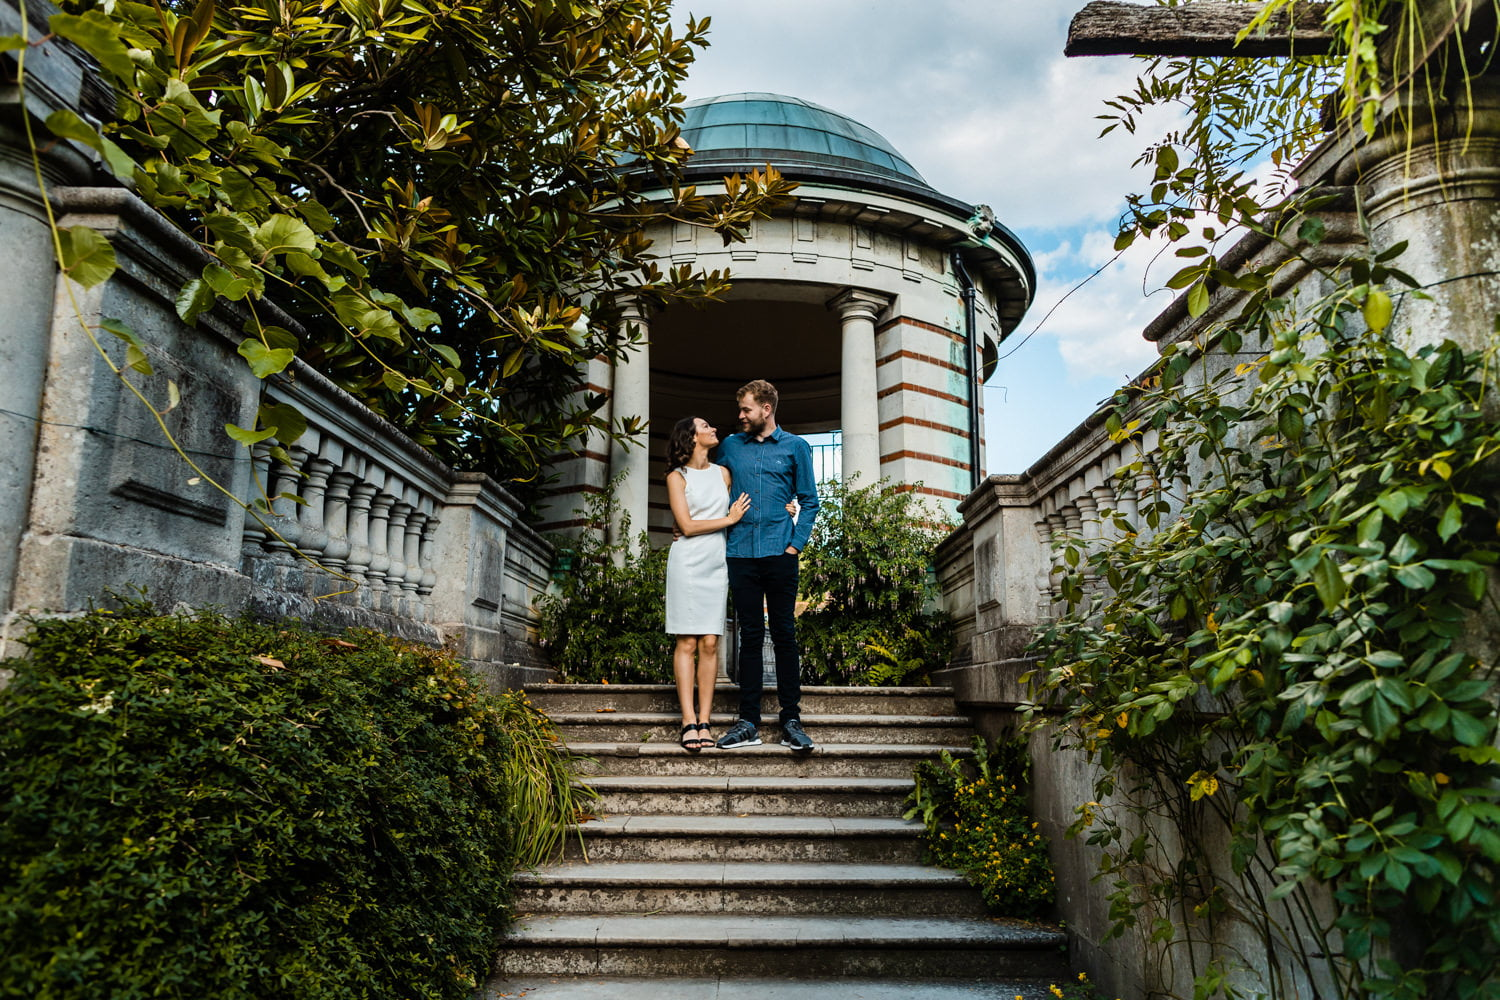 Hampstead Wedding Photographer - Pergola Hill Gardens Engagement Session 8